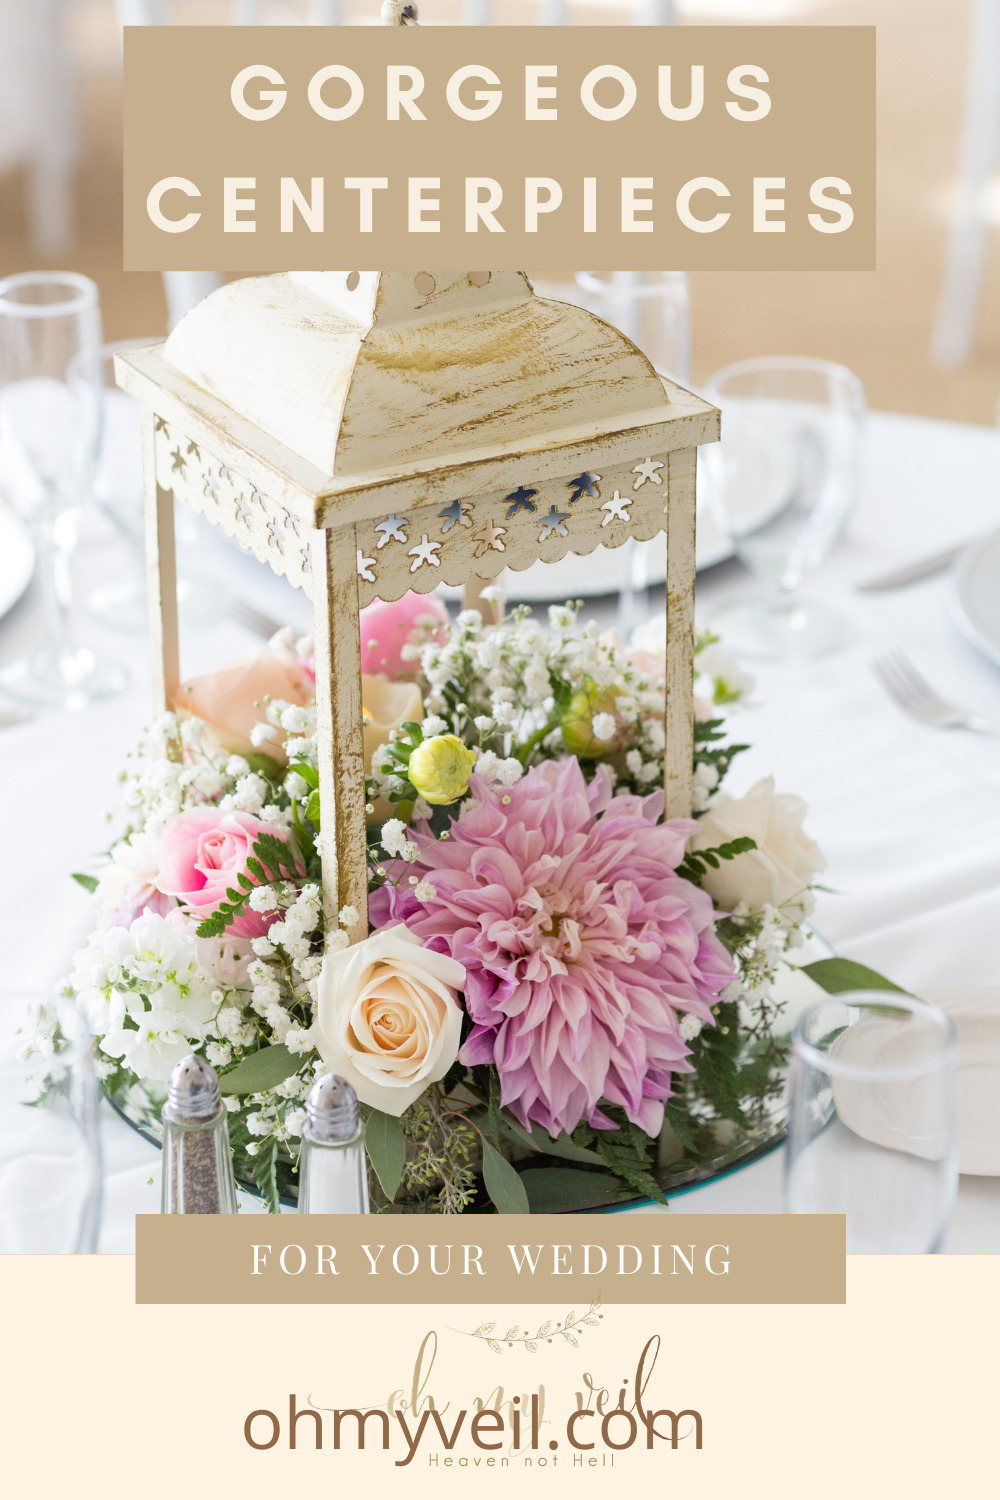 Ohmyveil.com has all the best original ideas for a perfect wedding day! Make sure you get every detail right for your big day. These incredible centerpieces are sure to tie your wedding decor together perfectly!